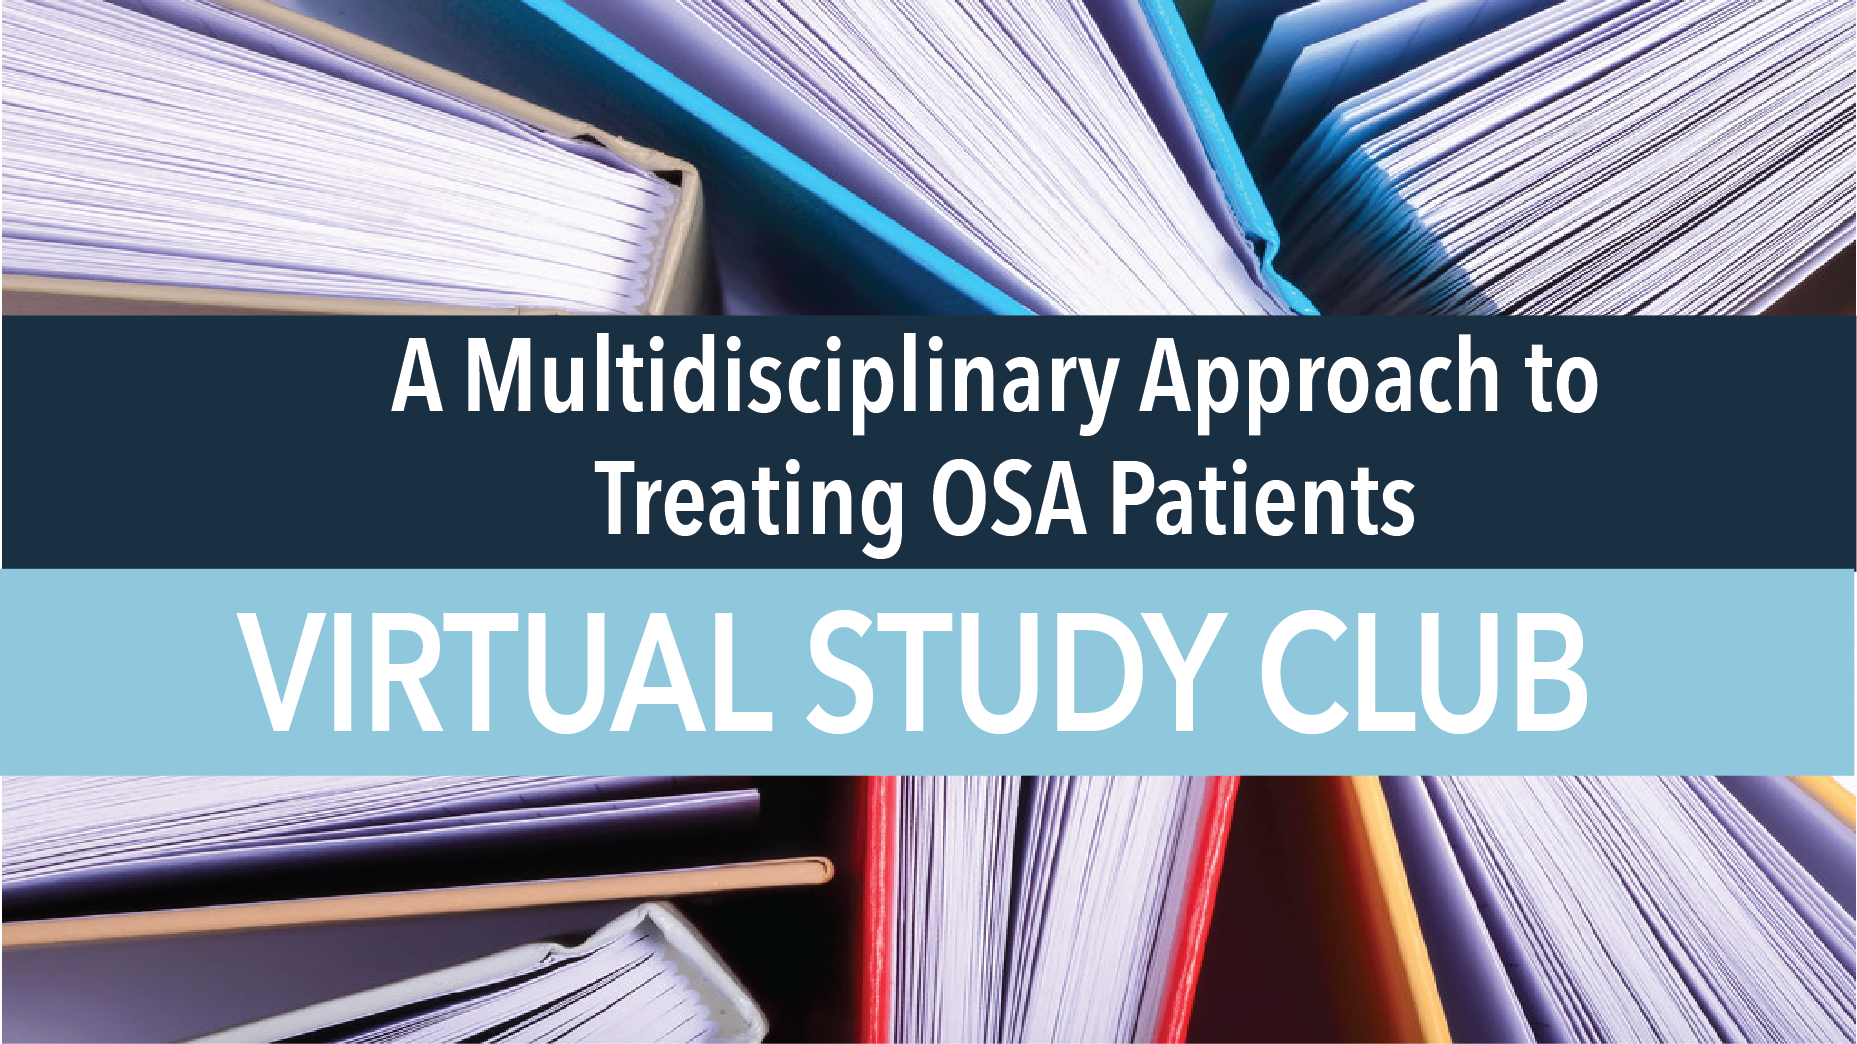 A Multidisciplinary Approach to Treating OSA Patients.png